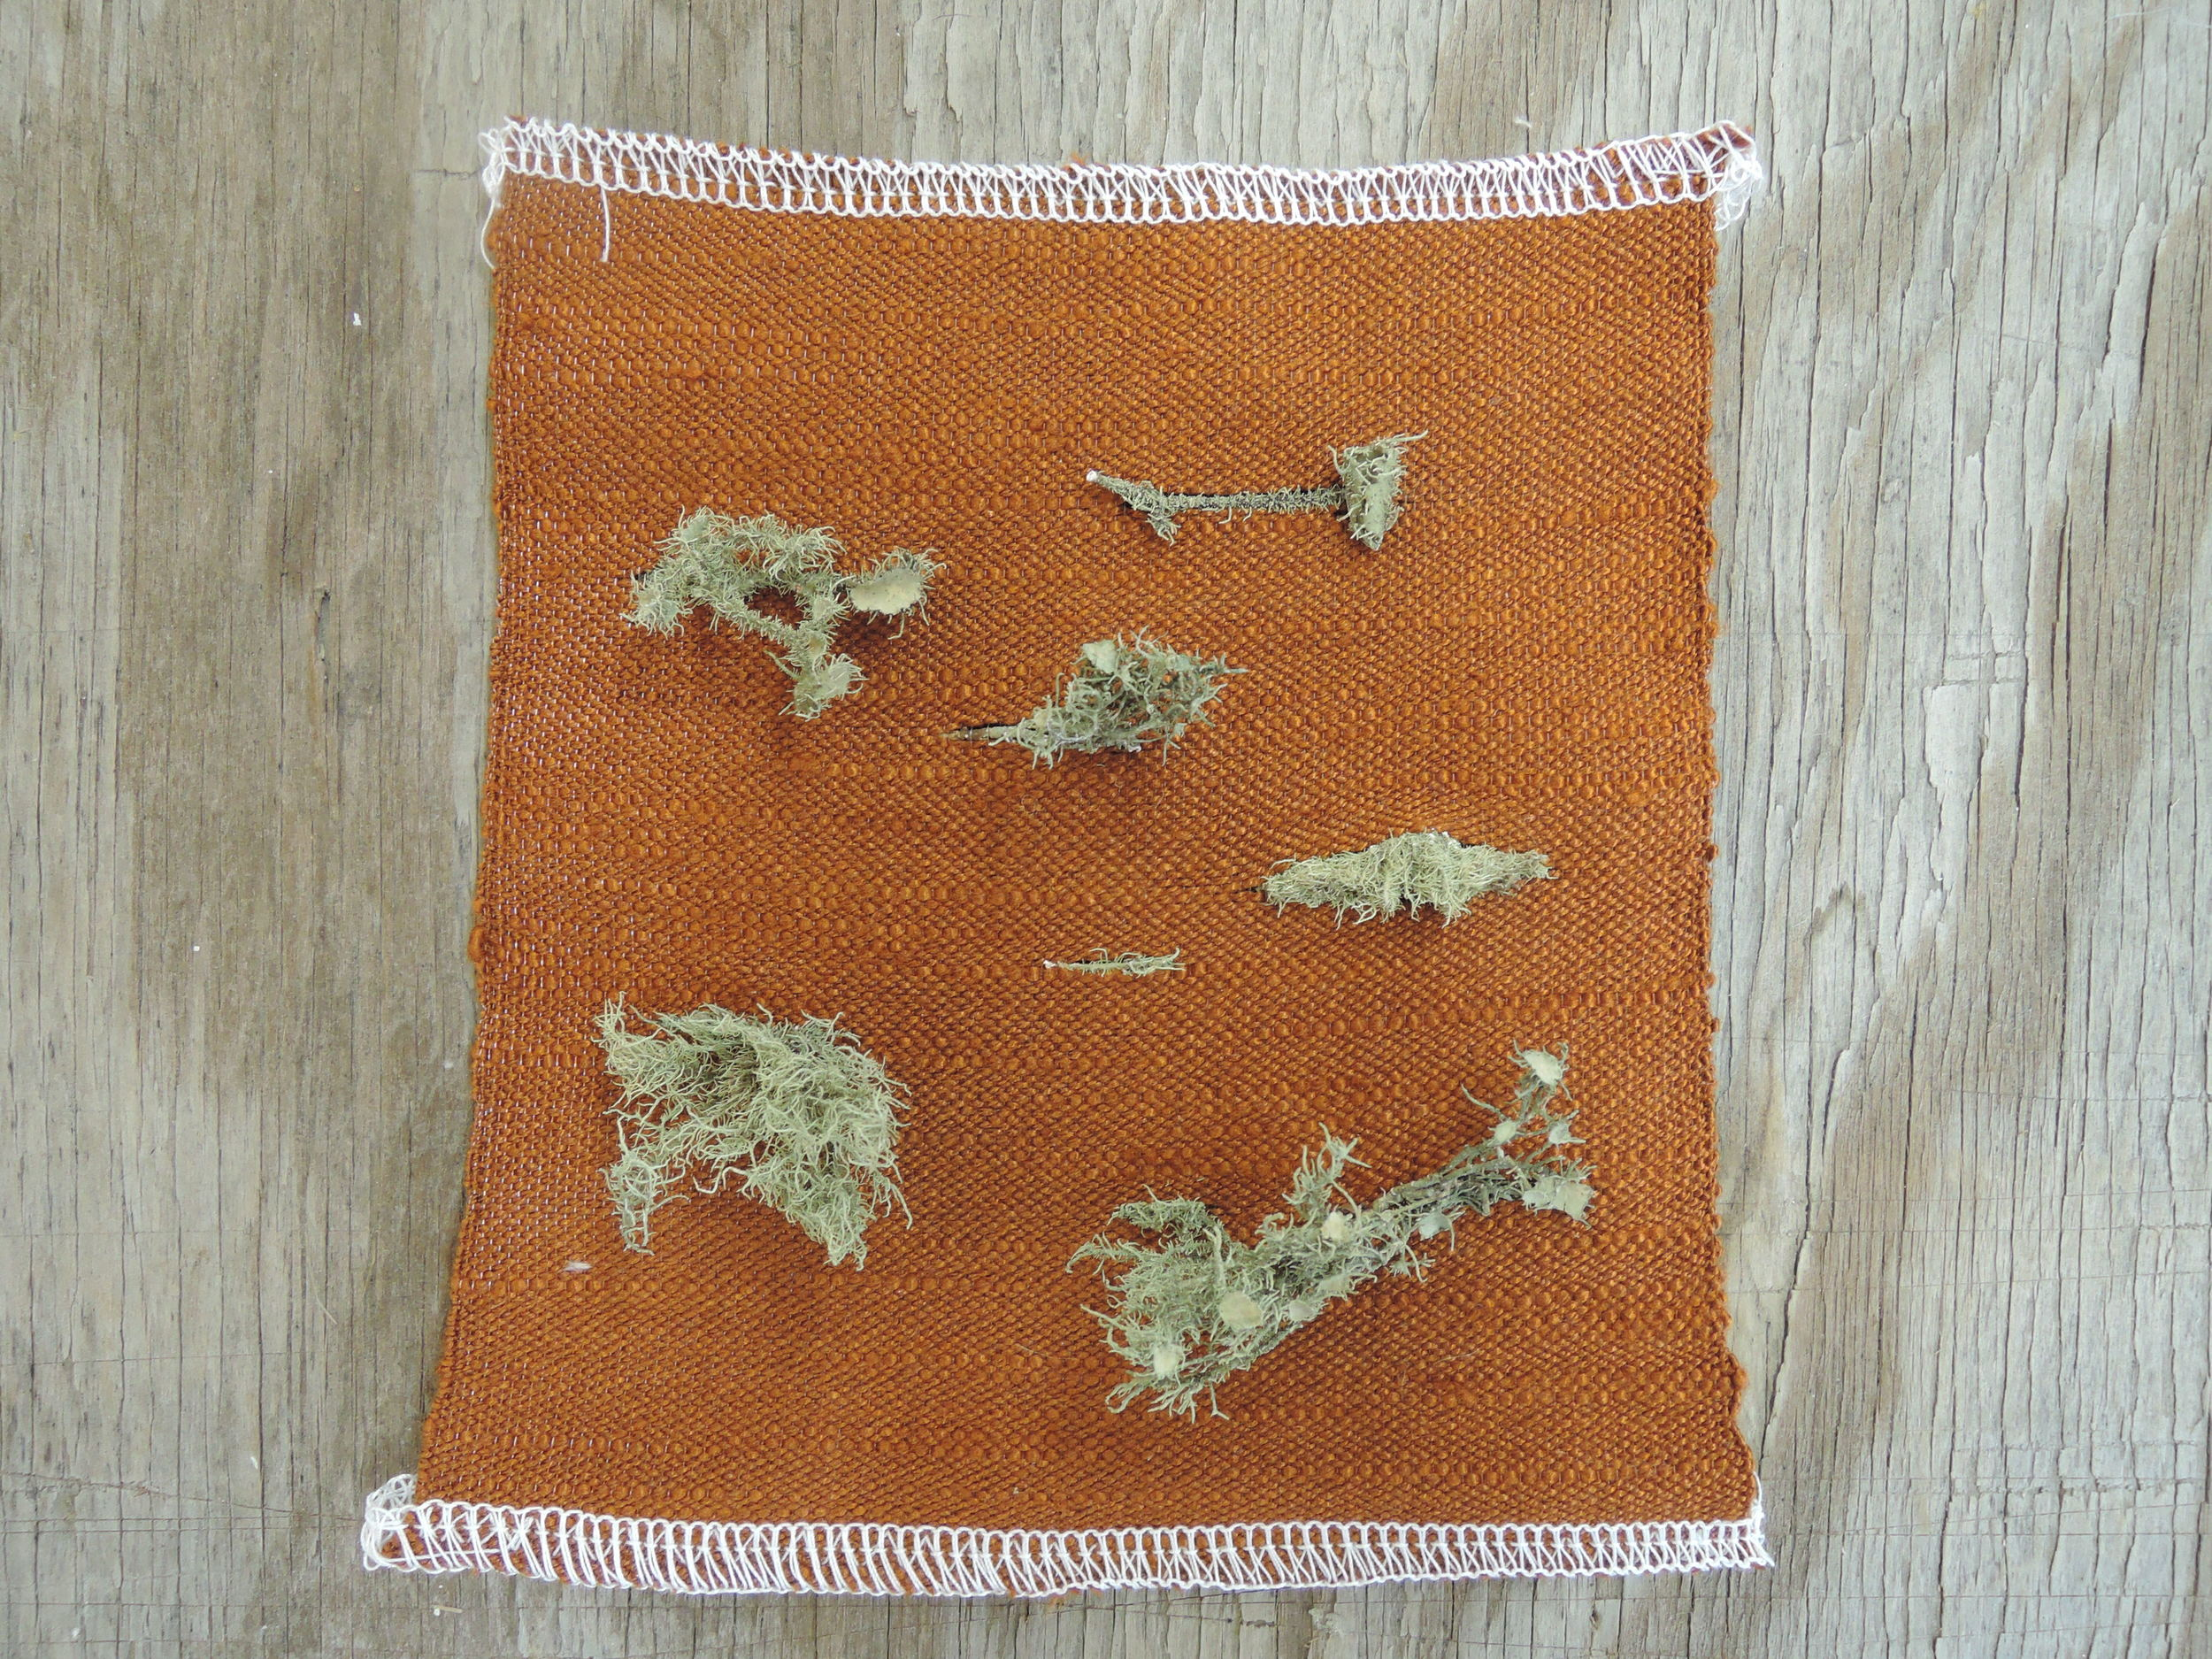 Lichen sample with a 70s style yarn.